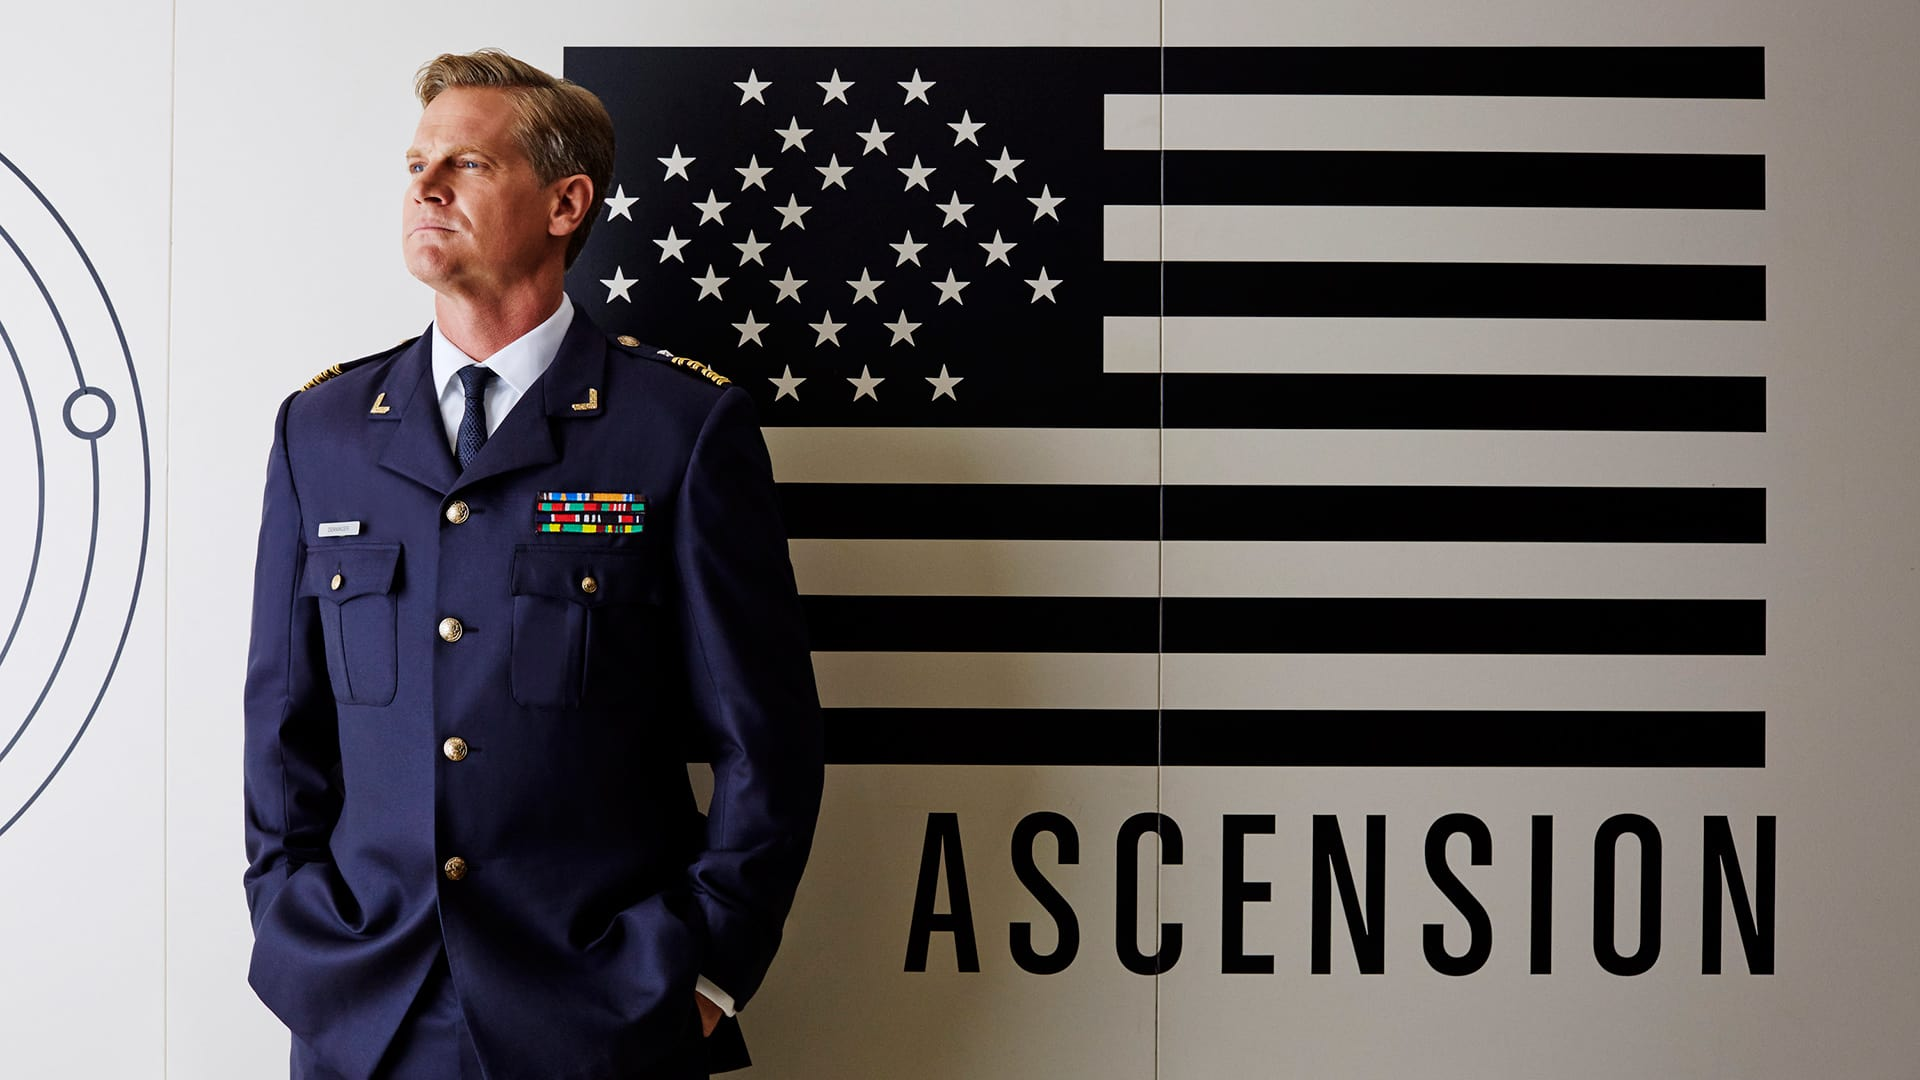 Ascension: Netflix moordzaak in de ruimte